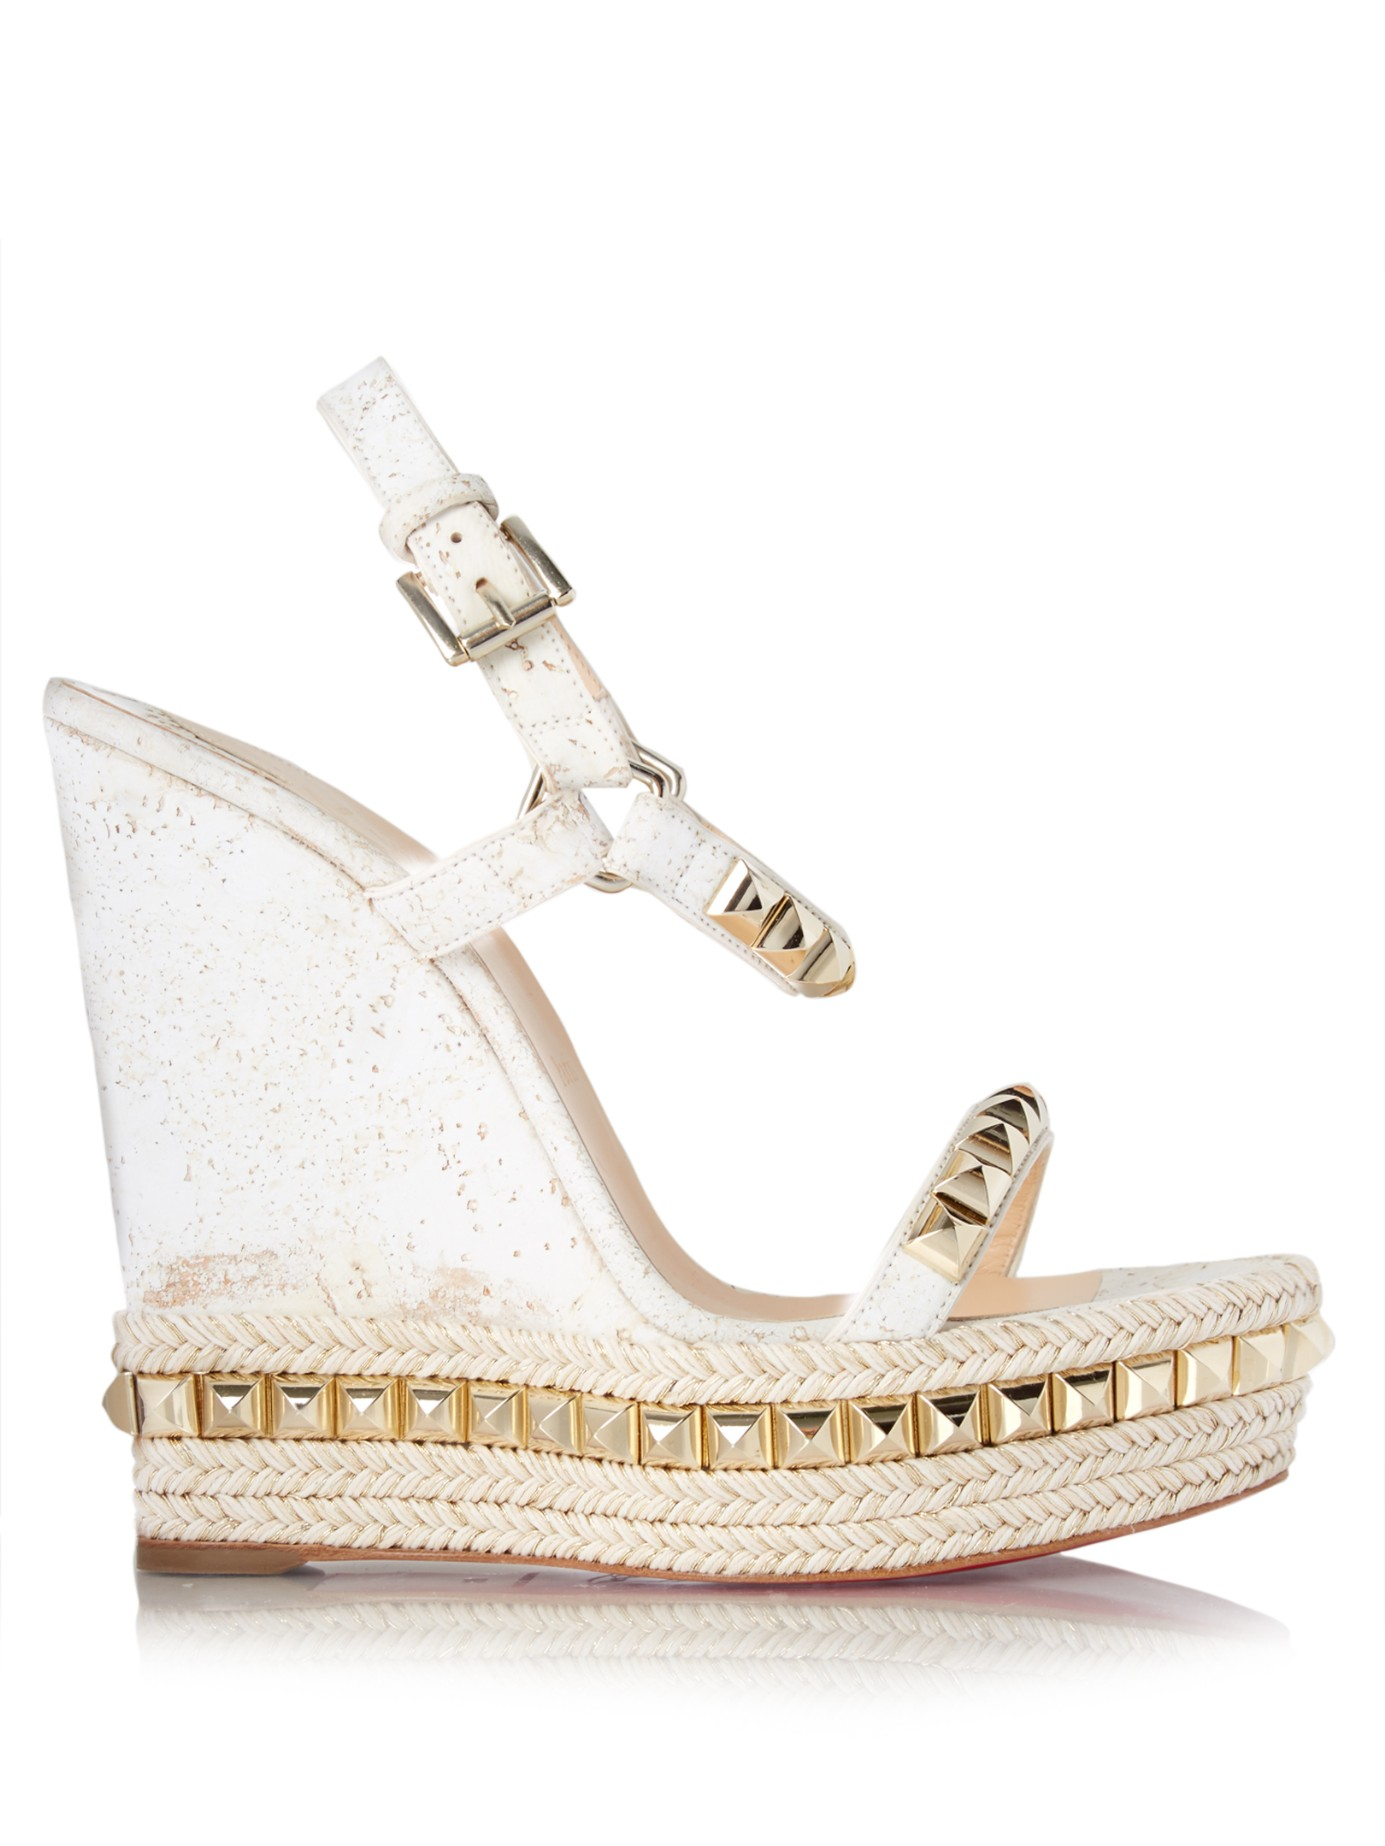 half off b13cc a48c2 promo code for white christian louboutin wedges 740e6 ee46f